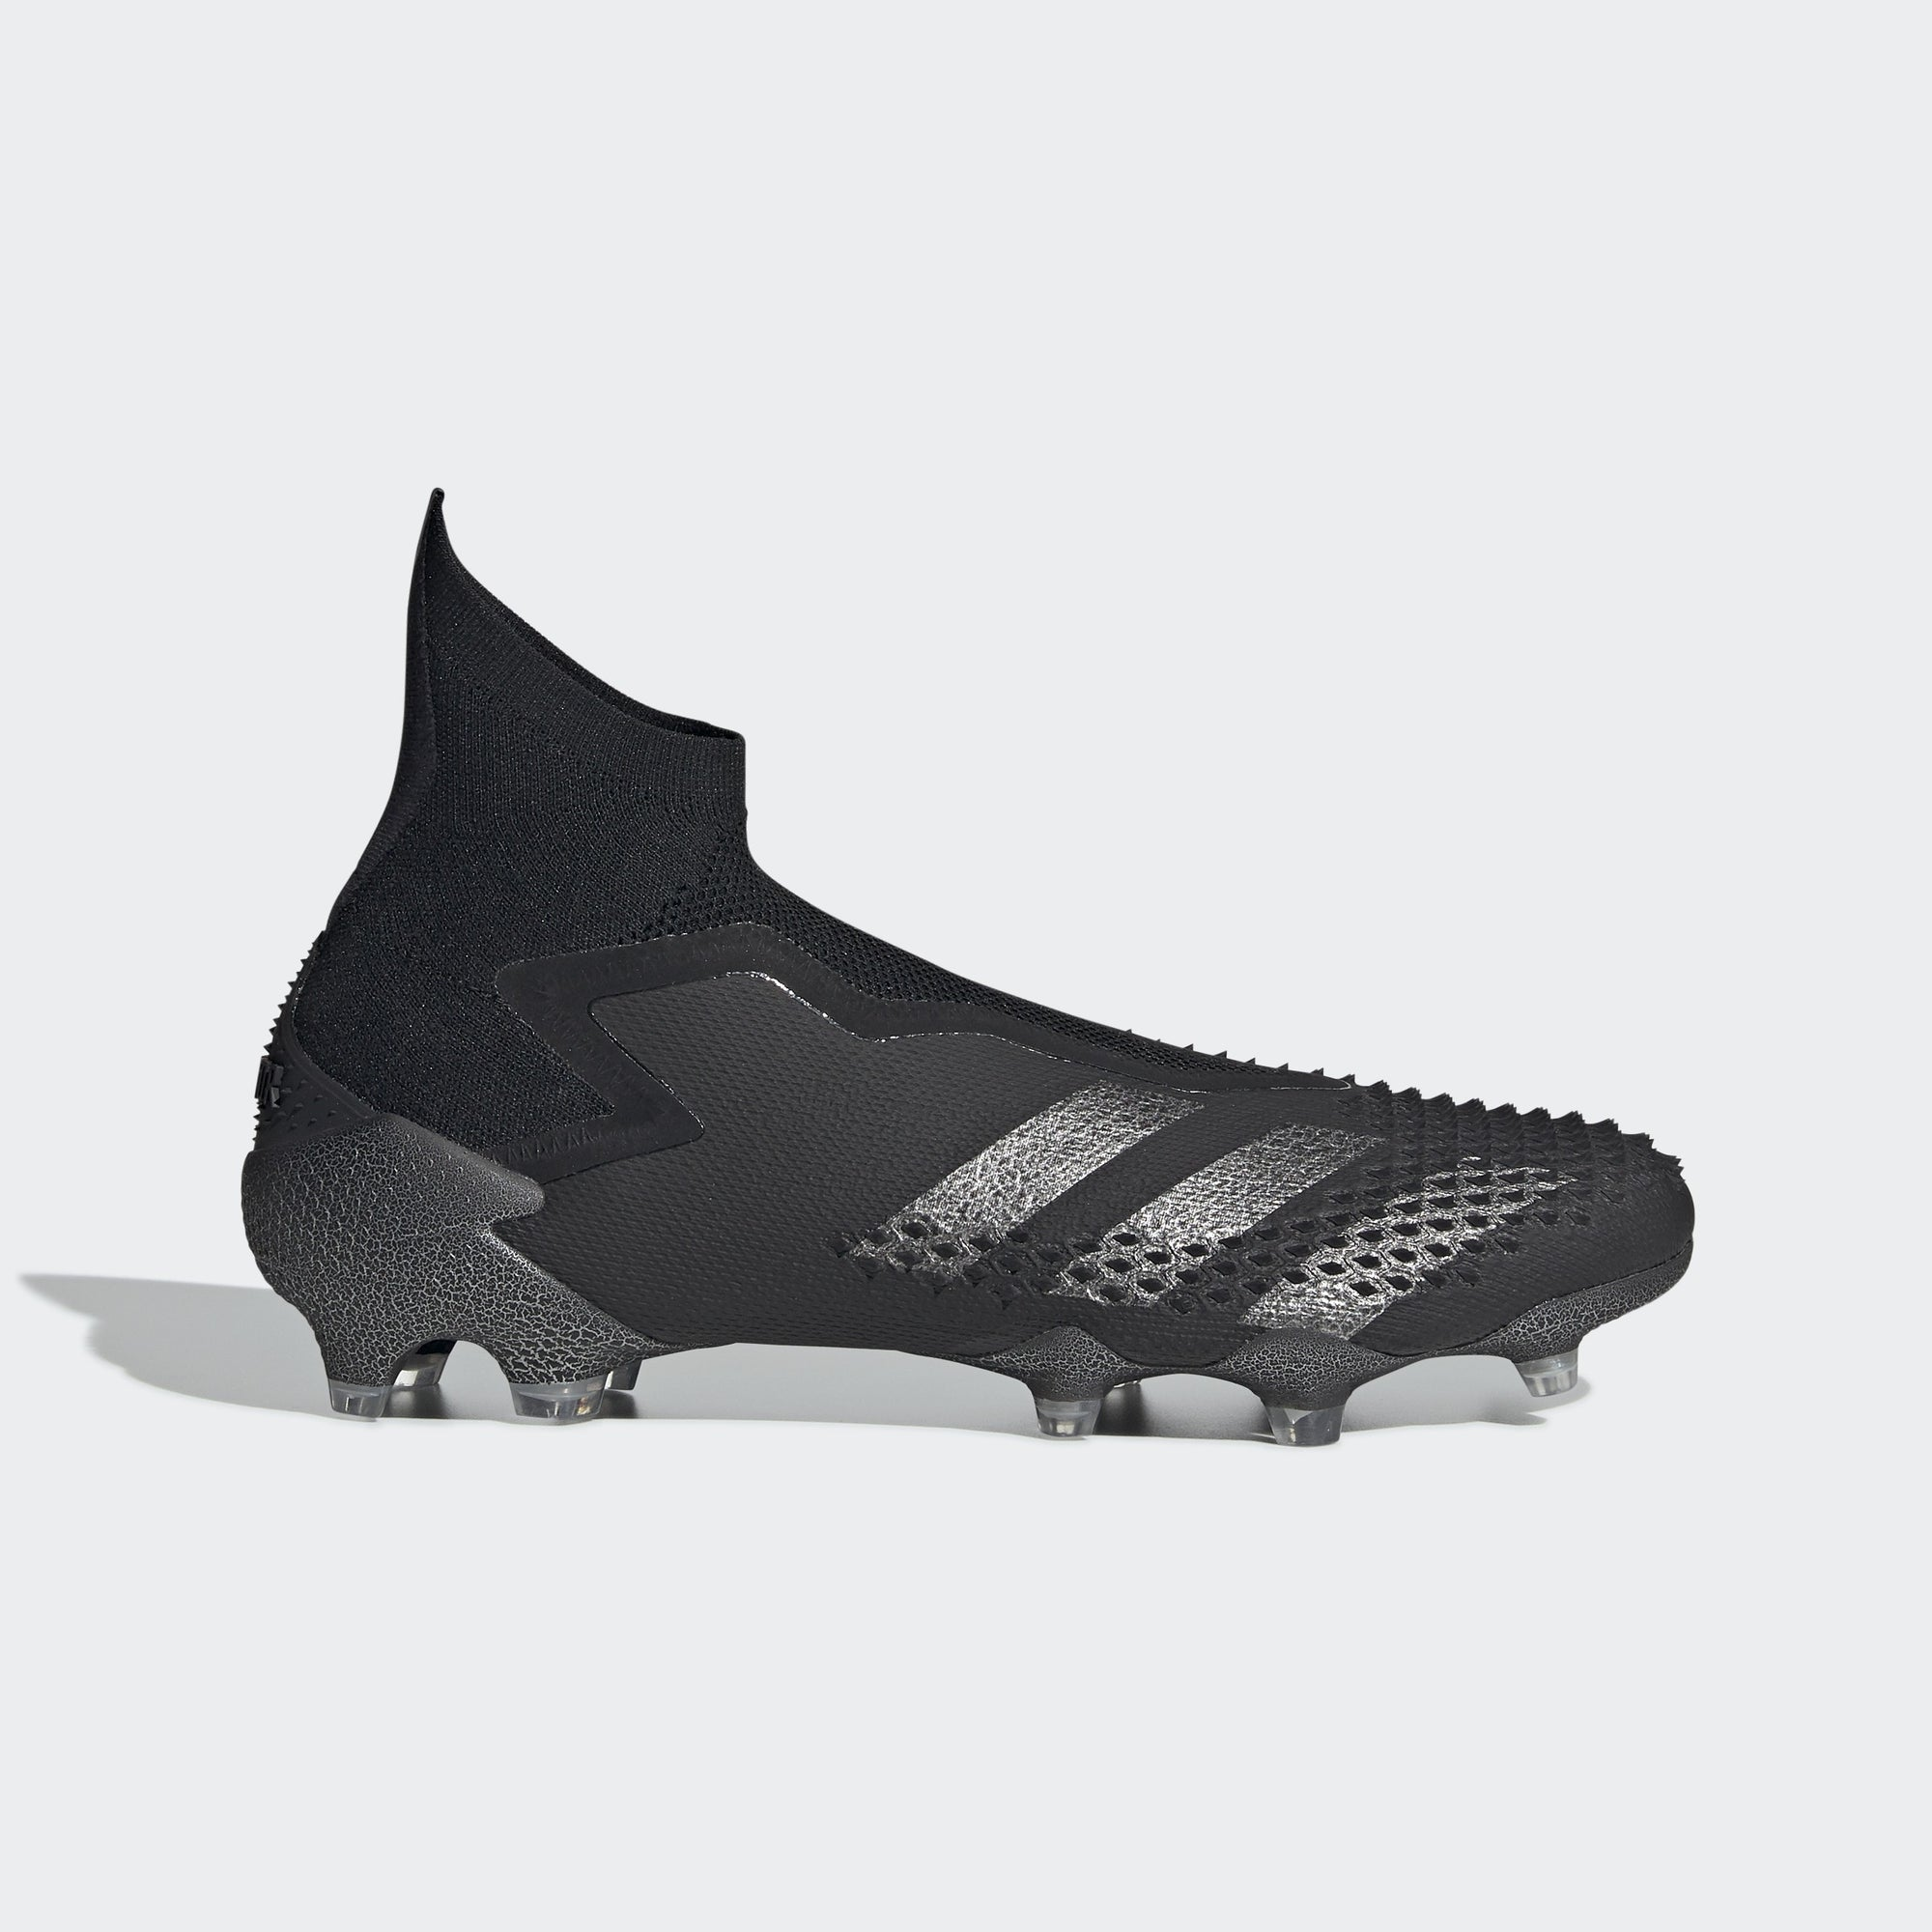 Predator Mutator 20+ Firm Ground Soccer Cleats